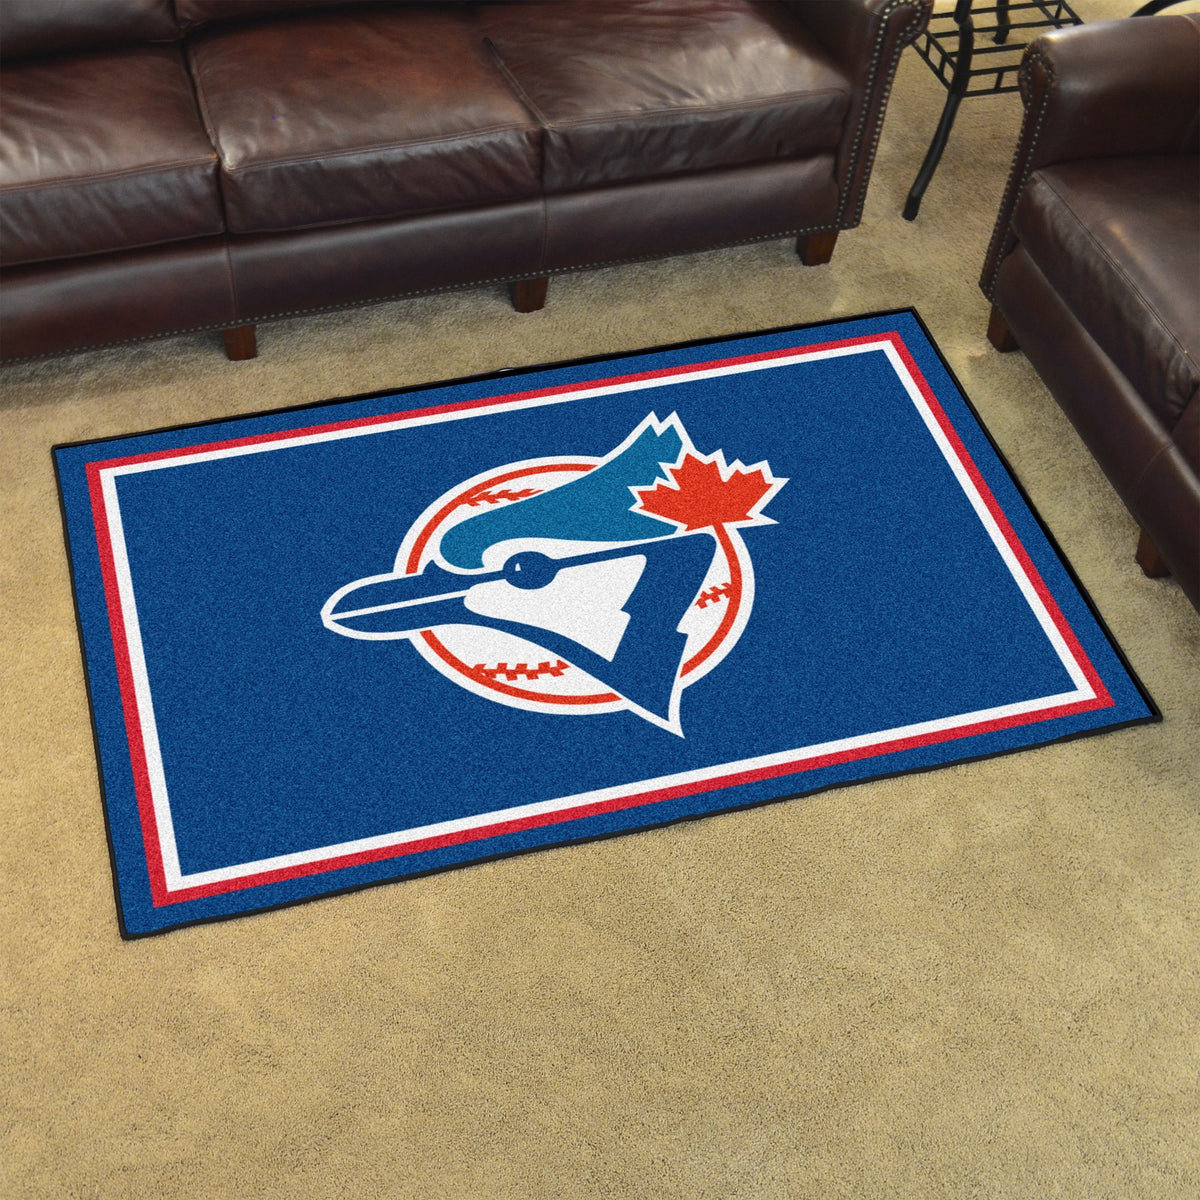 MLB Retro - 4' x 6' Rug MLB Retro Mats, Plush Rugs, 4x6 Rug, MLB, Home Fan Mats Toronto Blue Jays